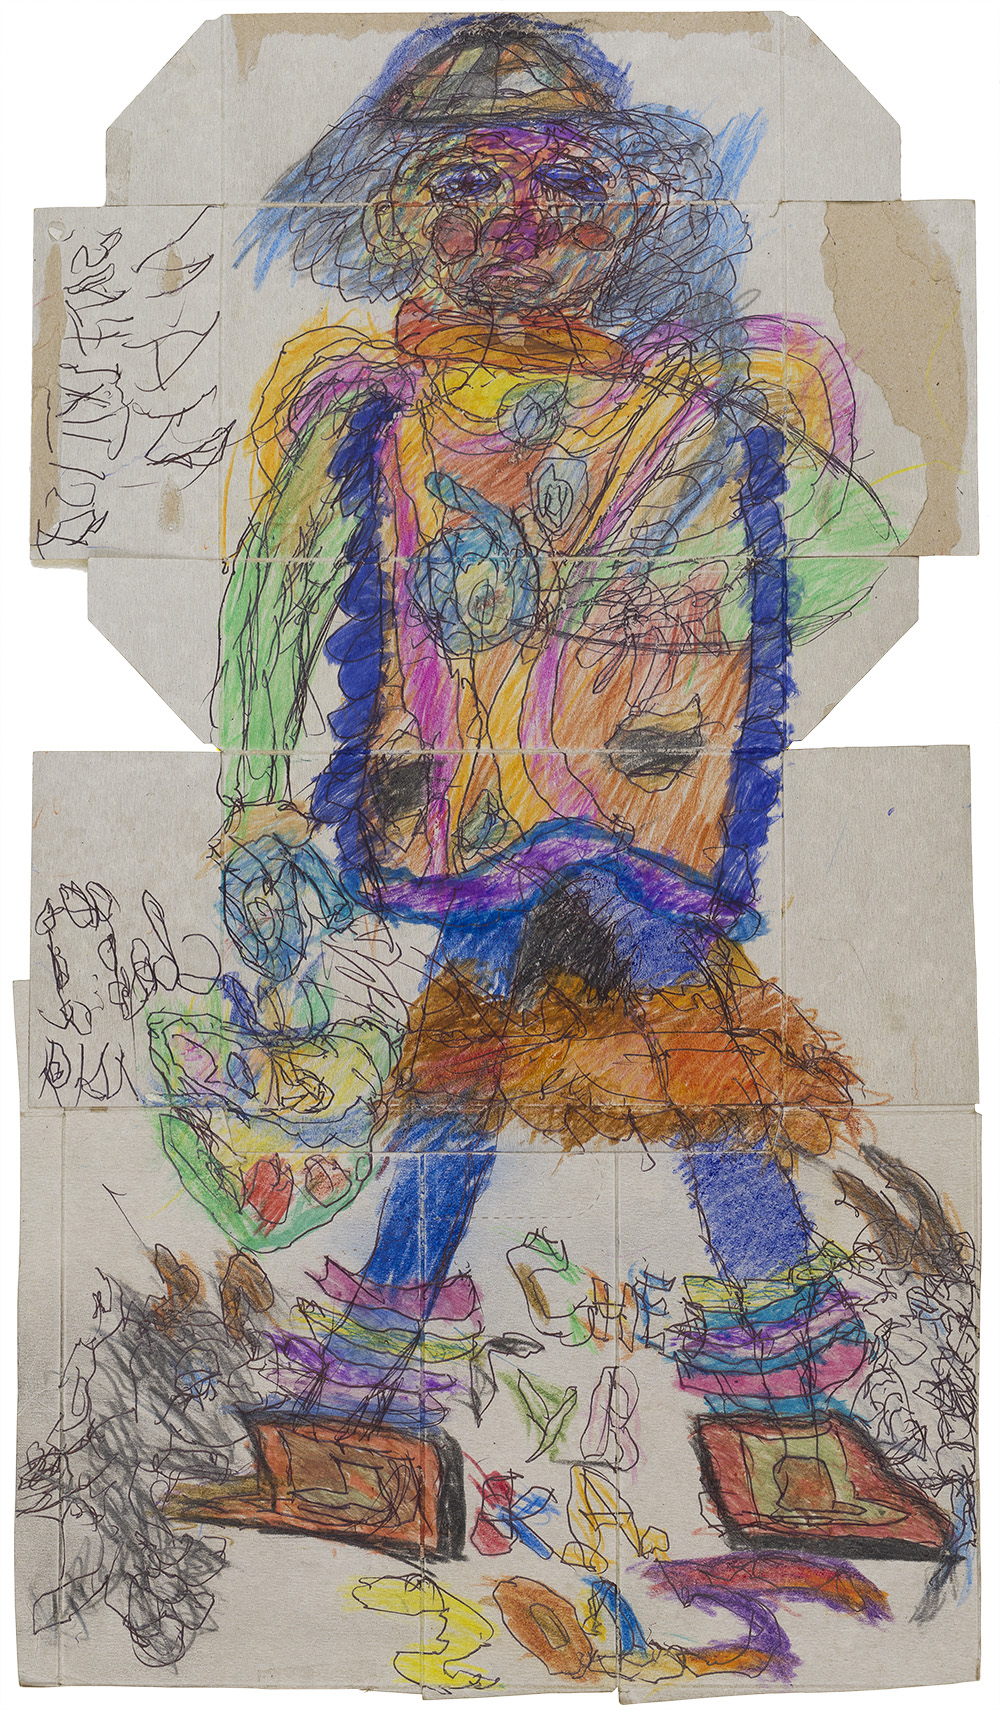 Ilya Natarevich    Snow Maiden  , 2015 Crayon, ball point pen on cereal box 22 x 12.5 inches 55.9 x 31.8 cm INa 16